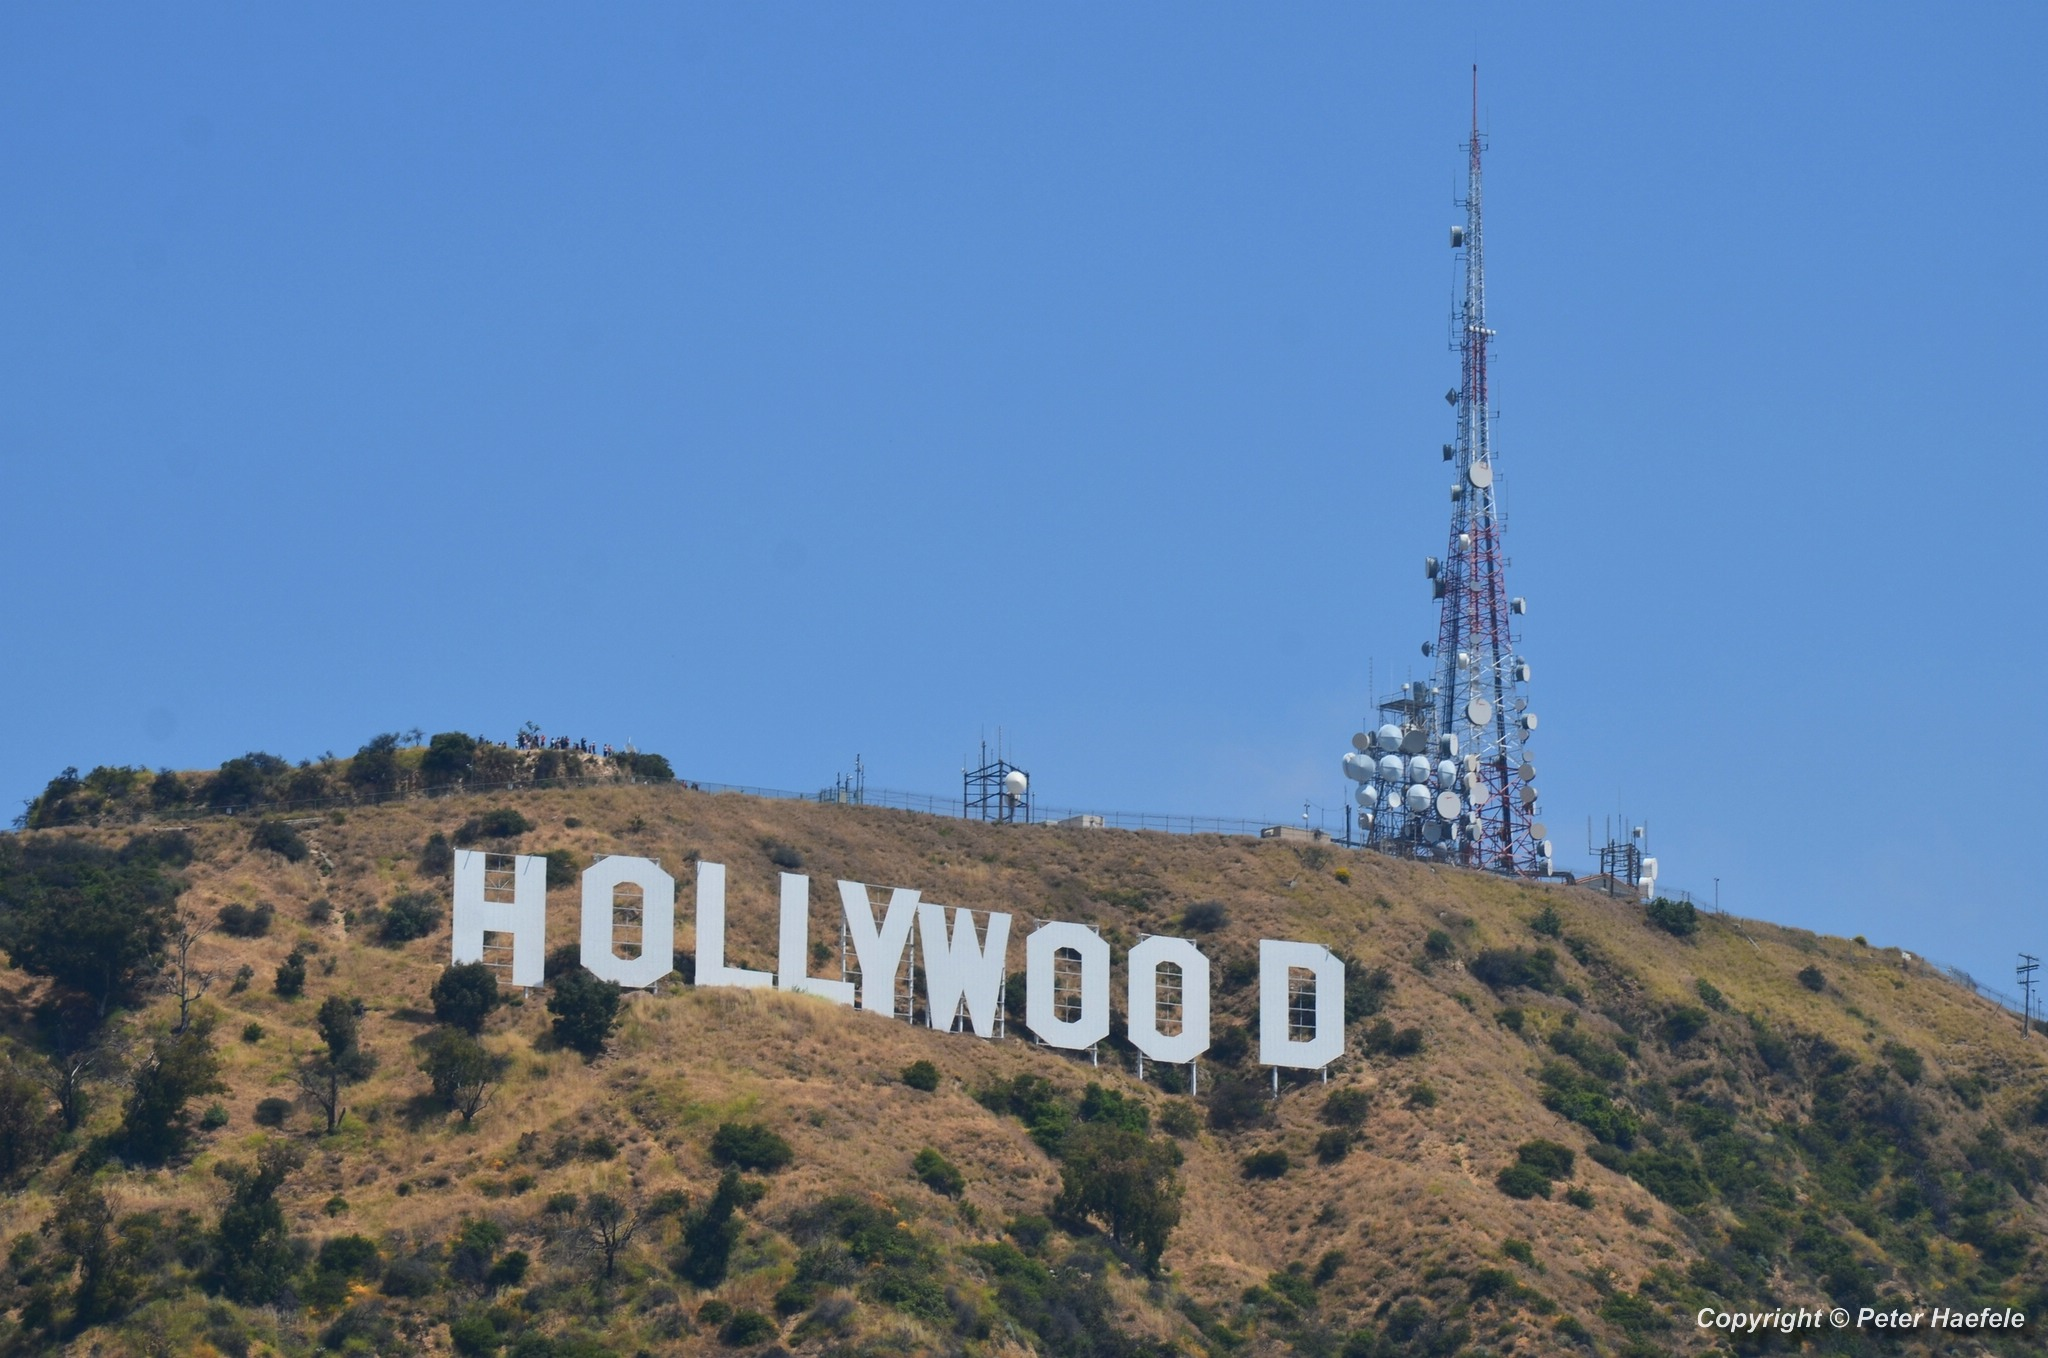 Roadtrip USA - Hollywood Sign - Los Angeles